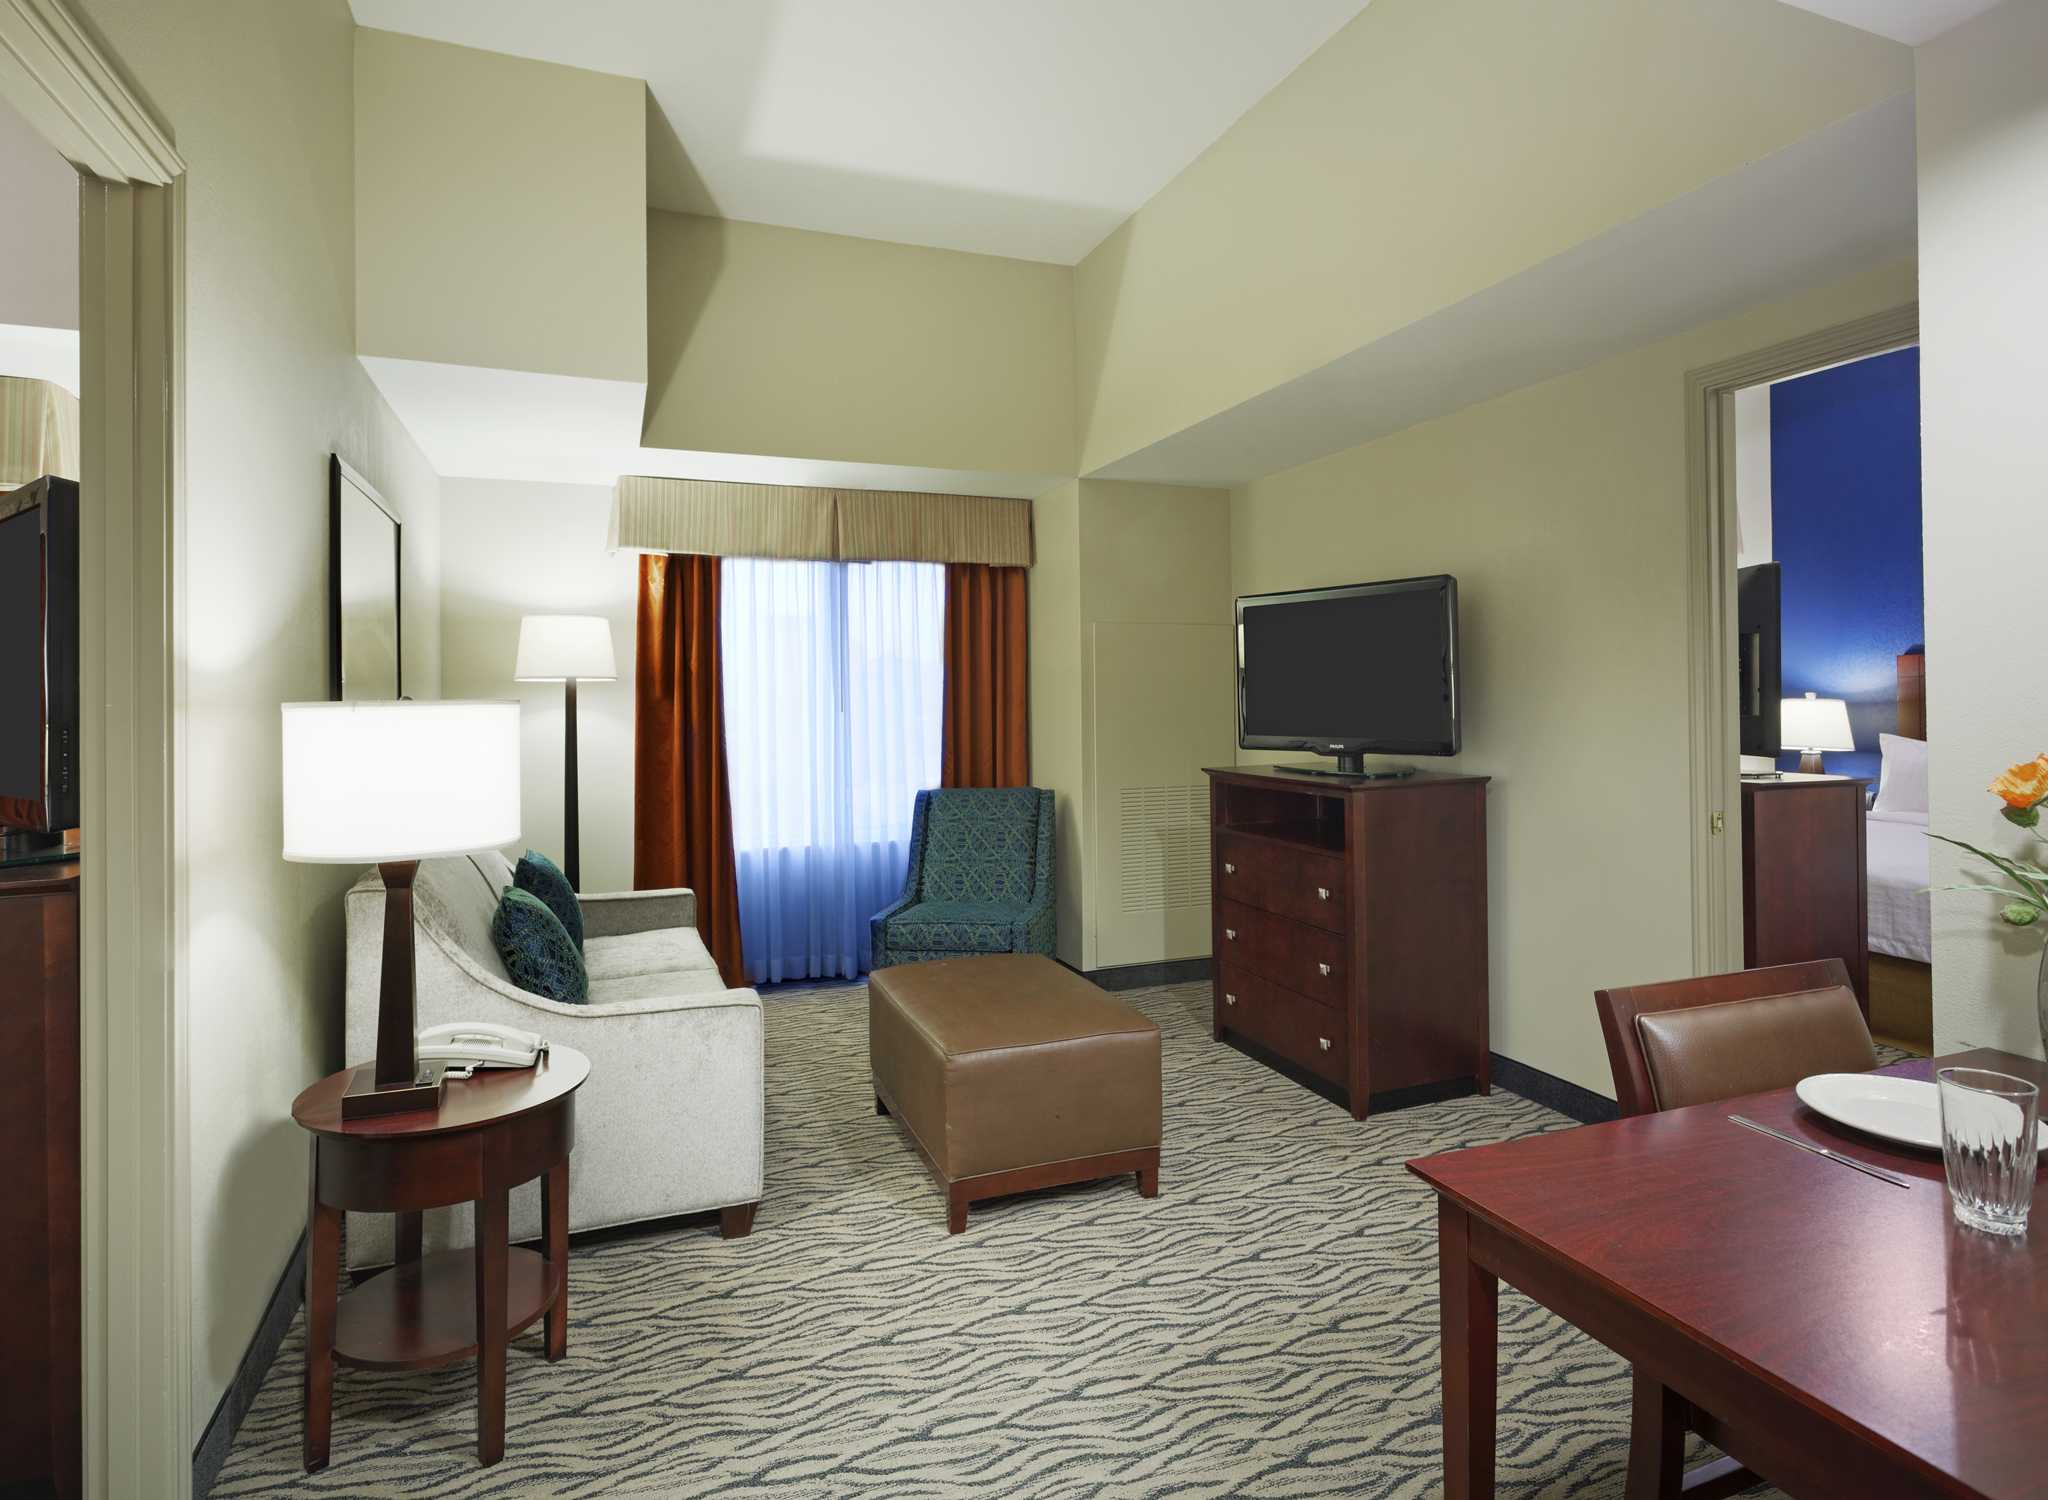 2 Bedroom Hotels In Nashville Tn 28 Images 2 Bedroom Hotels In Nashville Tn 28 Images 2